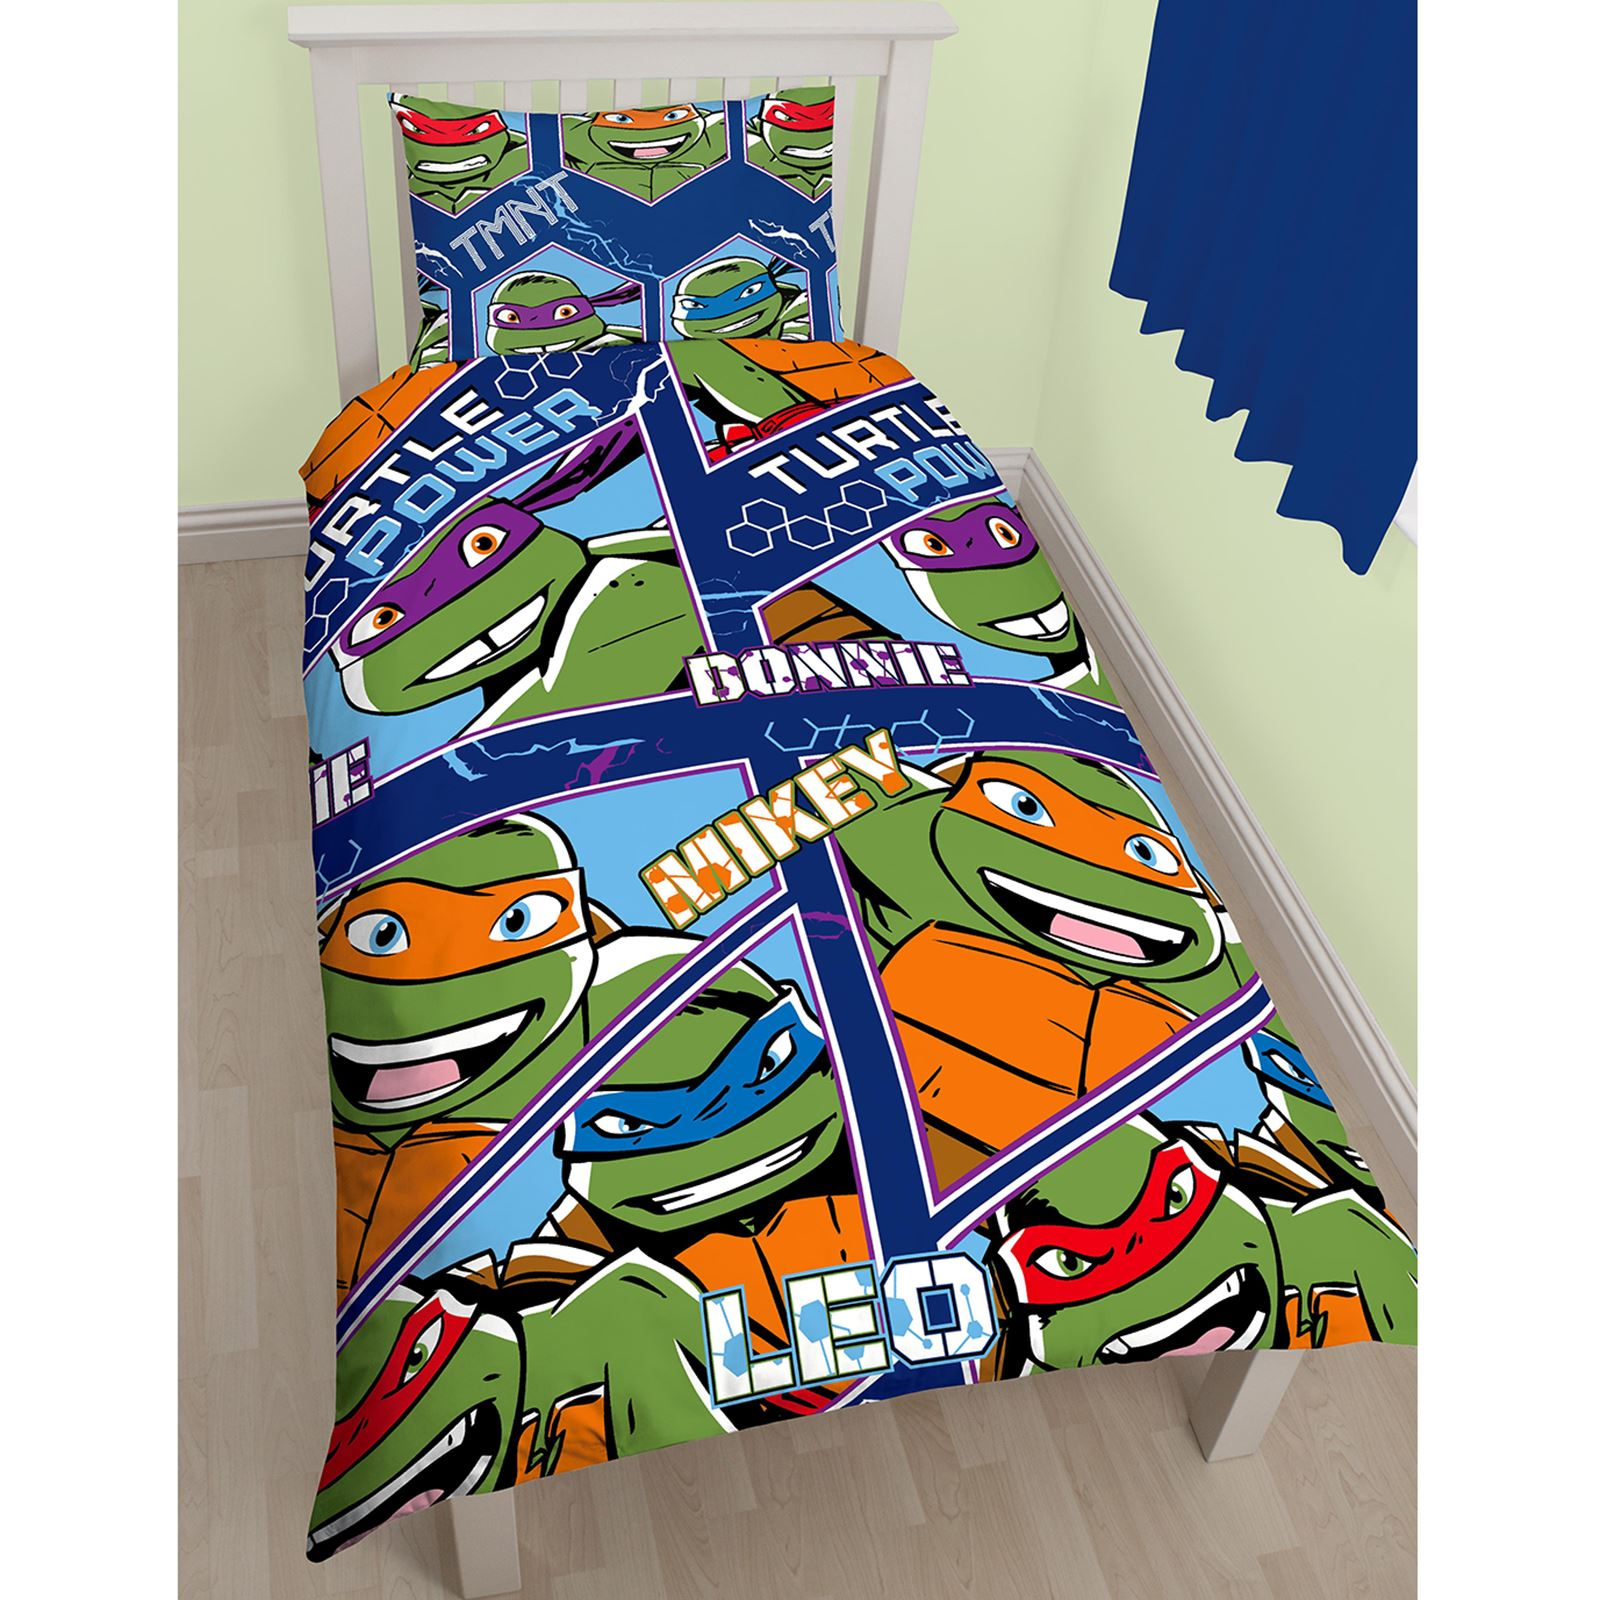 teenage ninja turtles abmessung einzeln doppelbettdecke wahl 54 72 vorh nge ebay. Black Bedroom Furniture Sets. Home Design Ideas